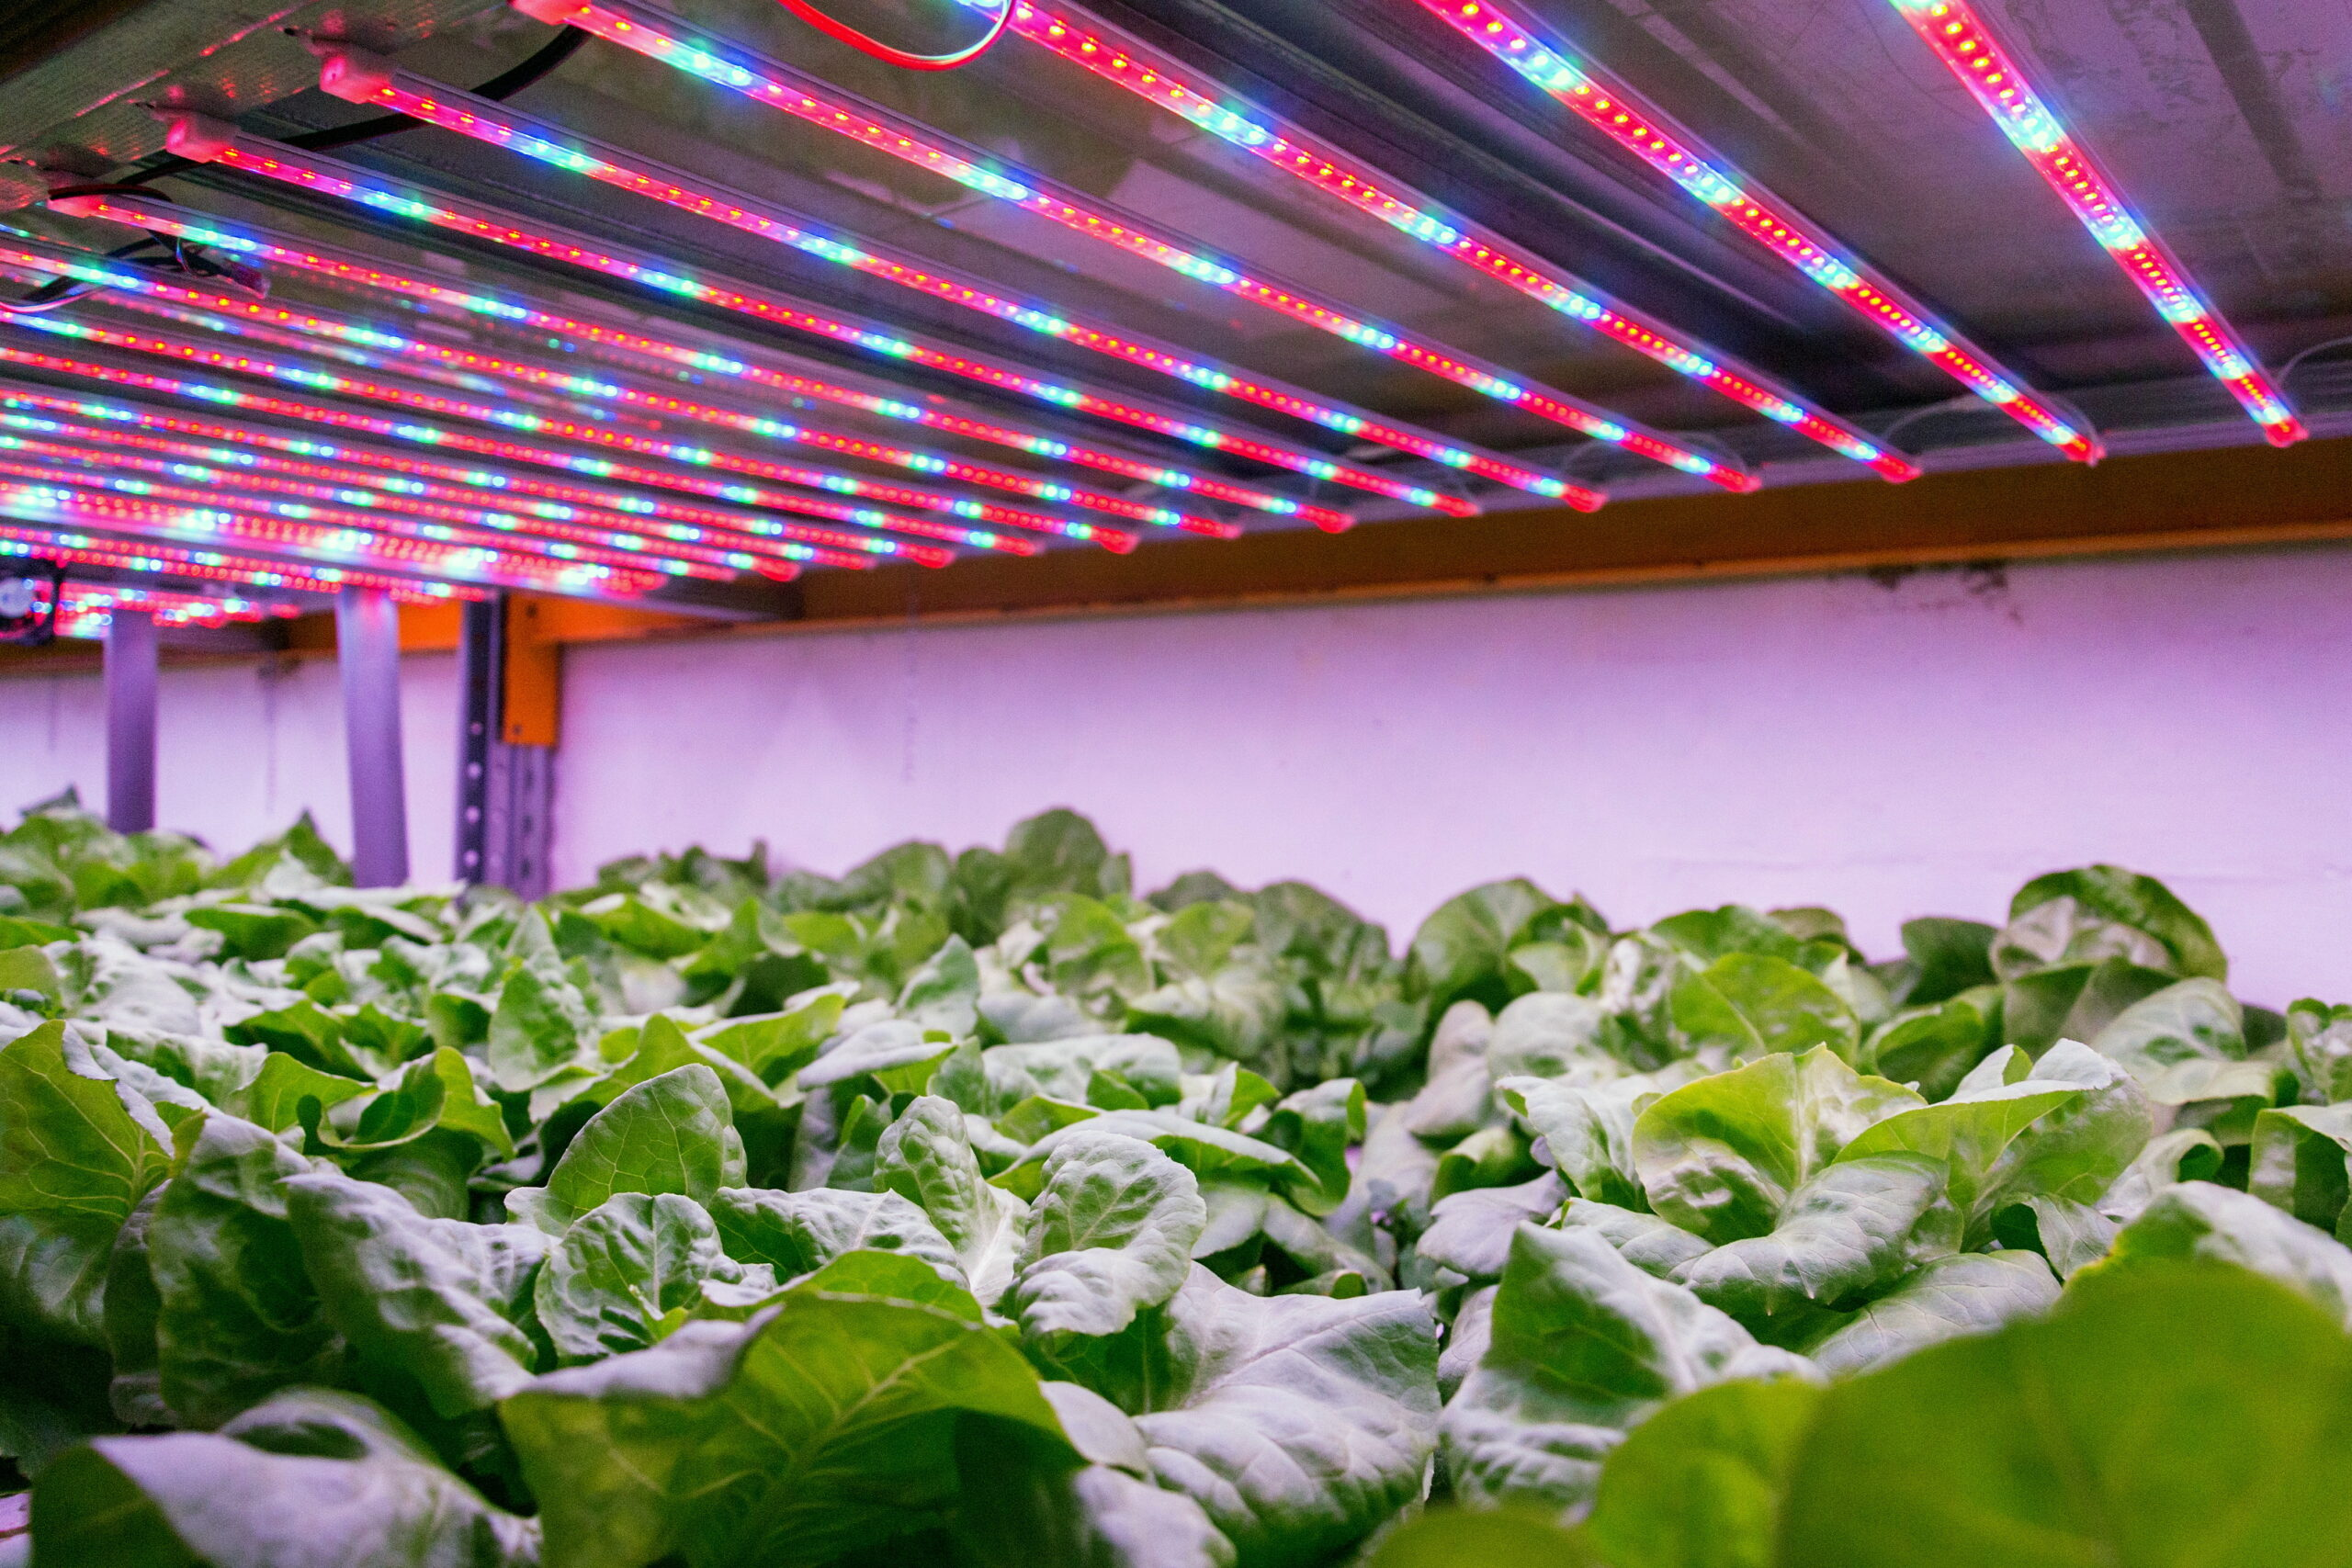 Vertical salad farm